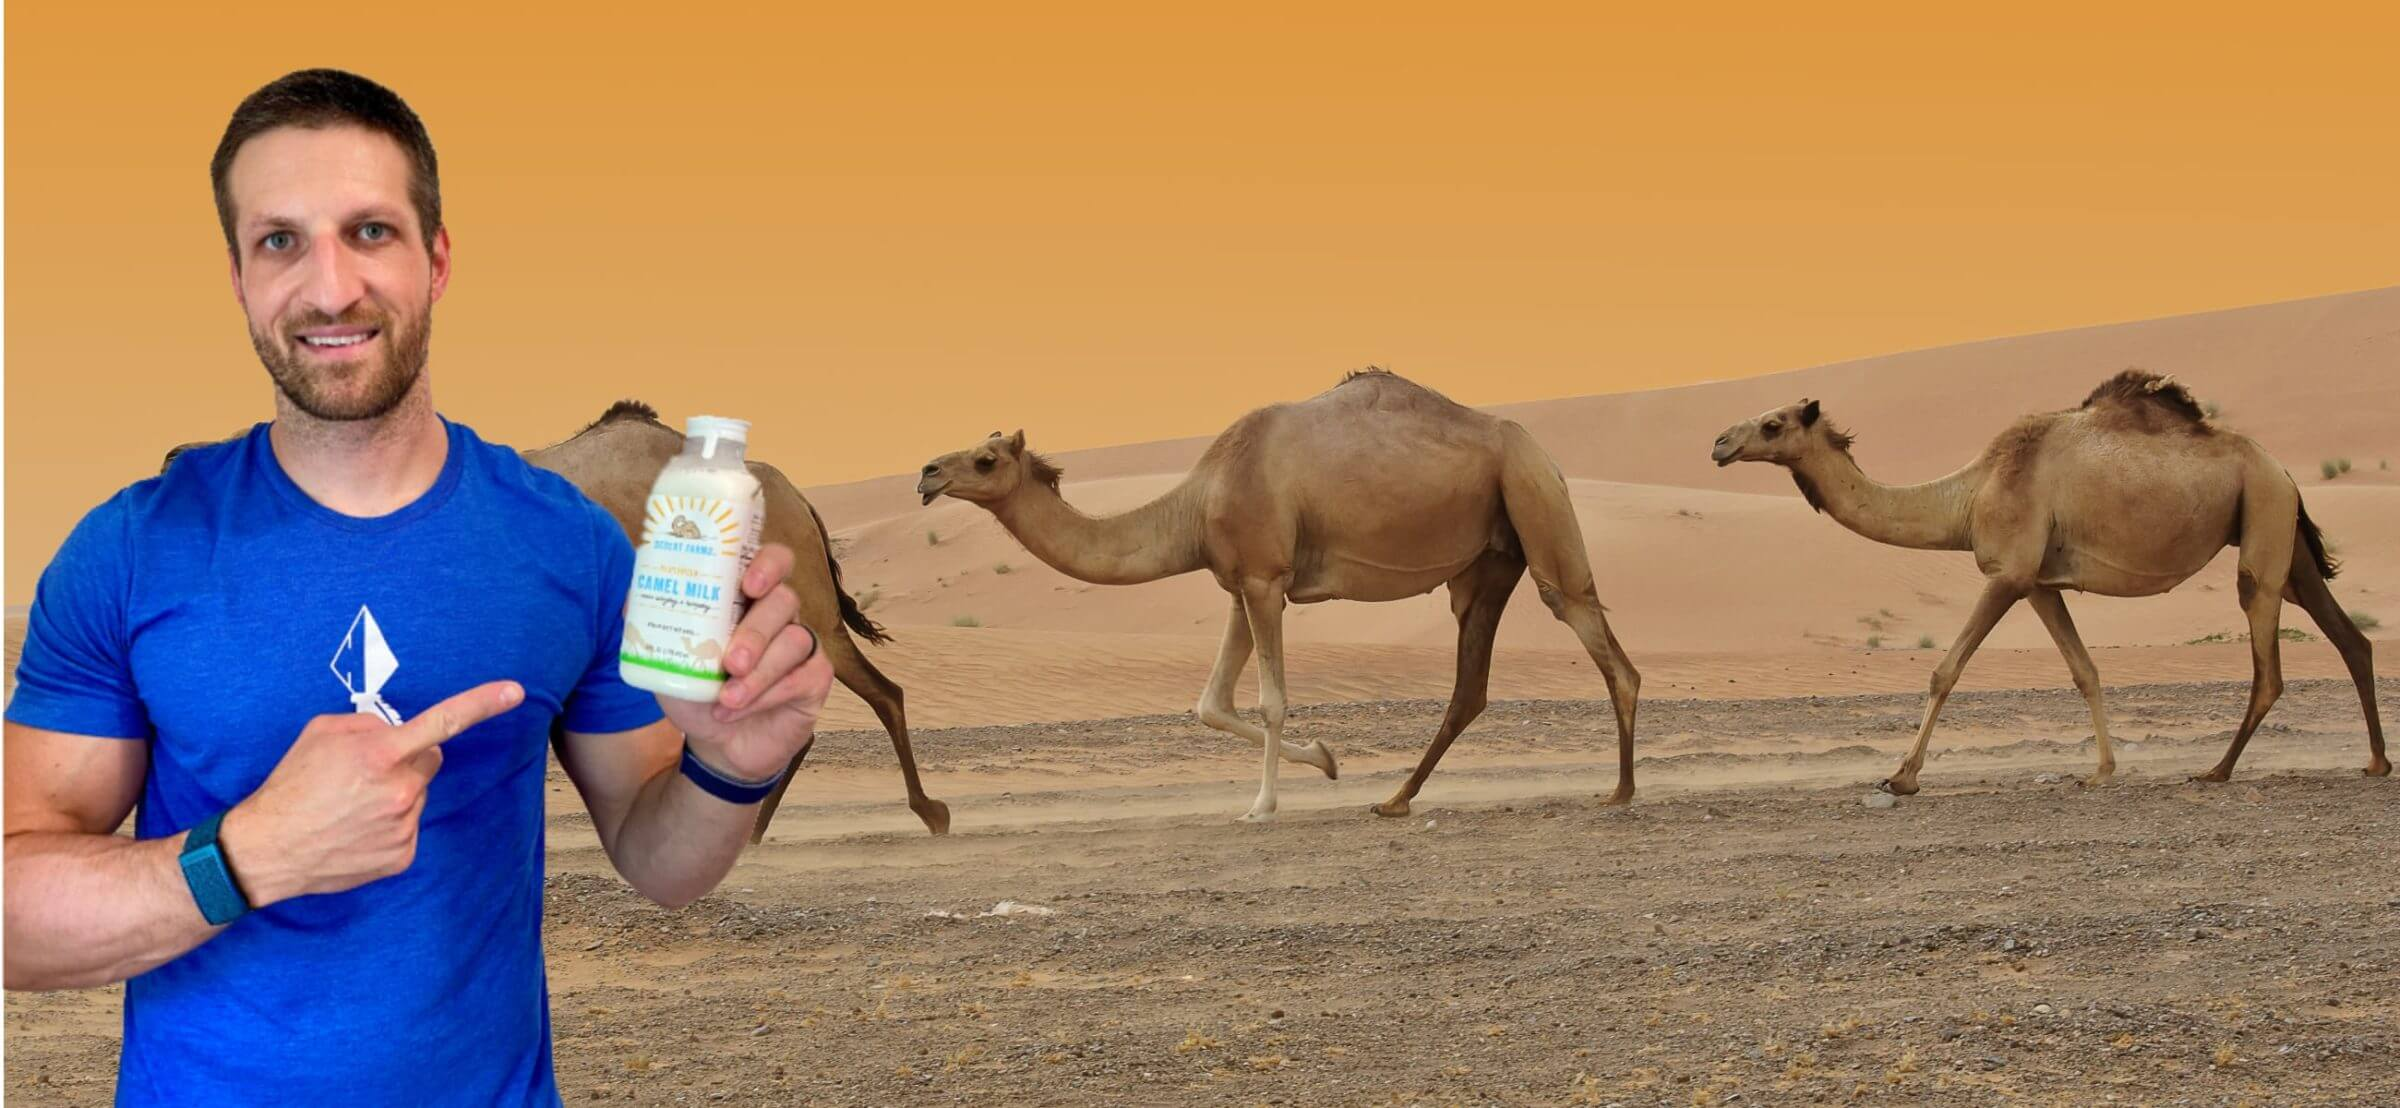 Is camel milk healthier than cow milk